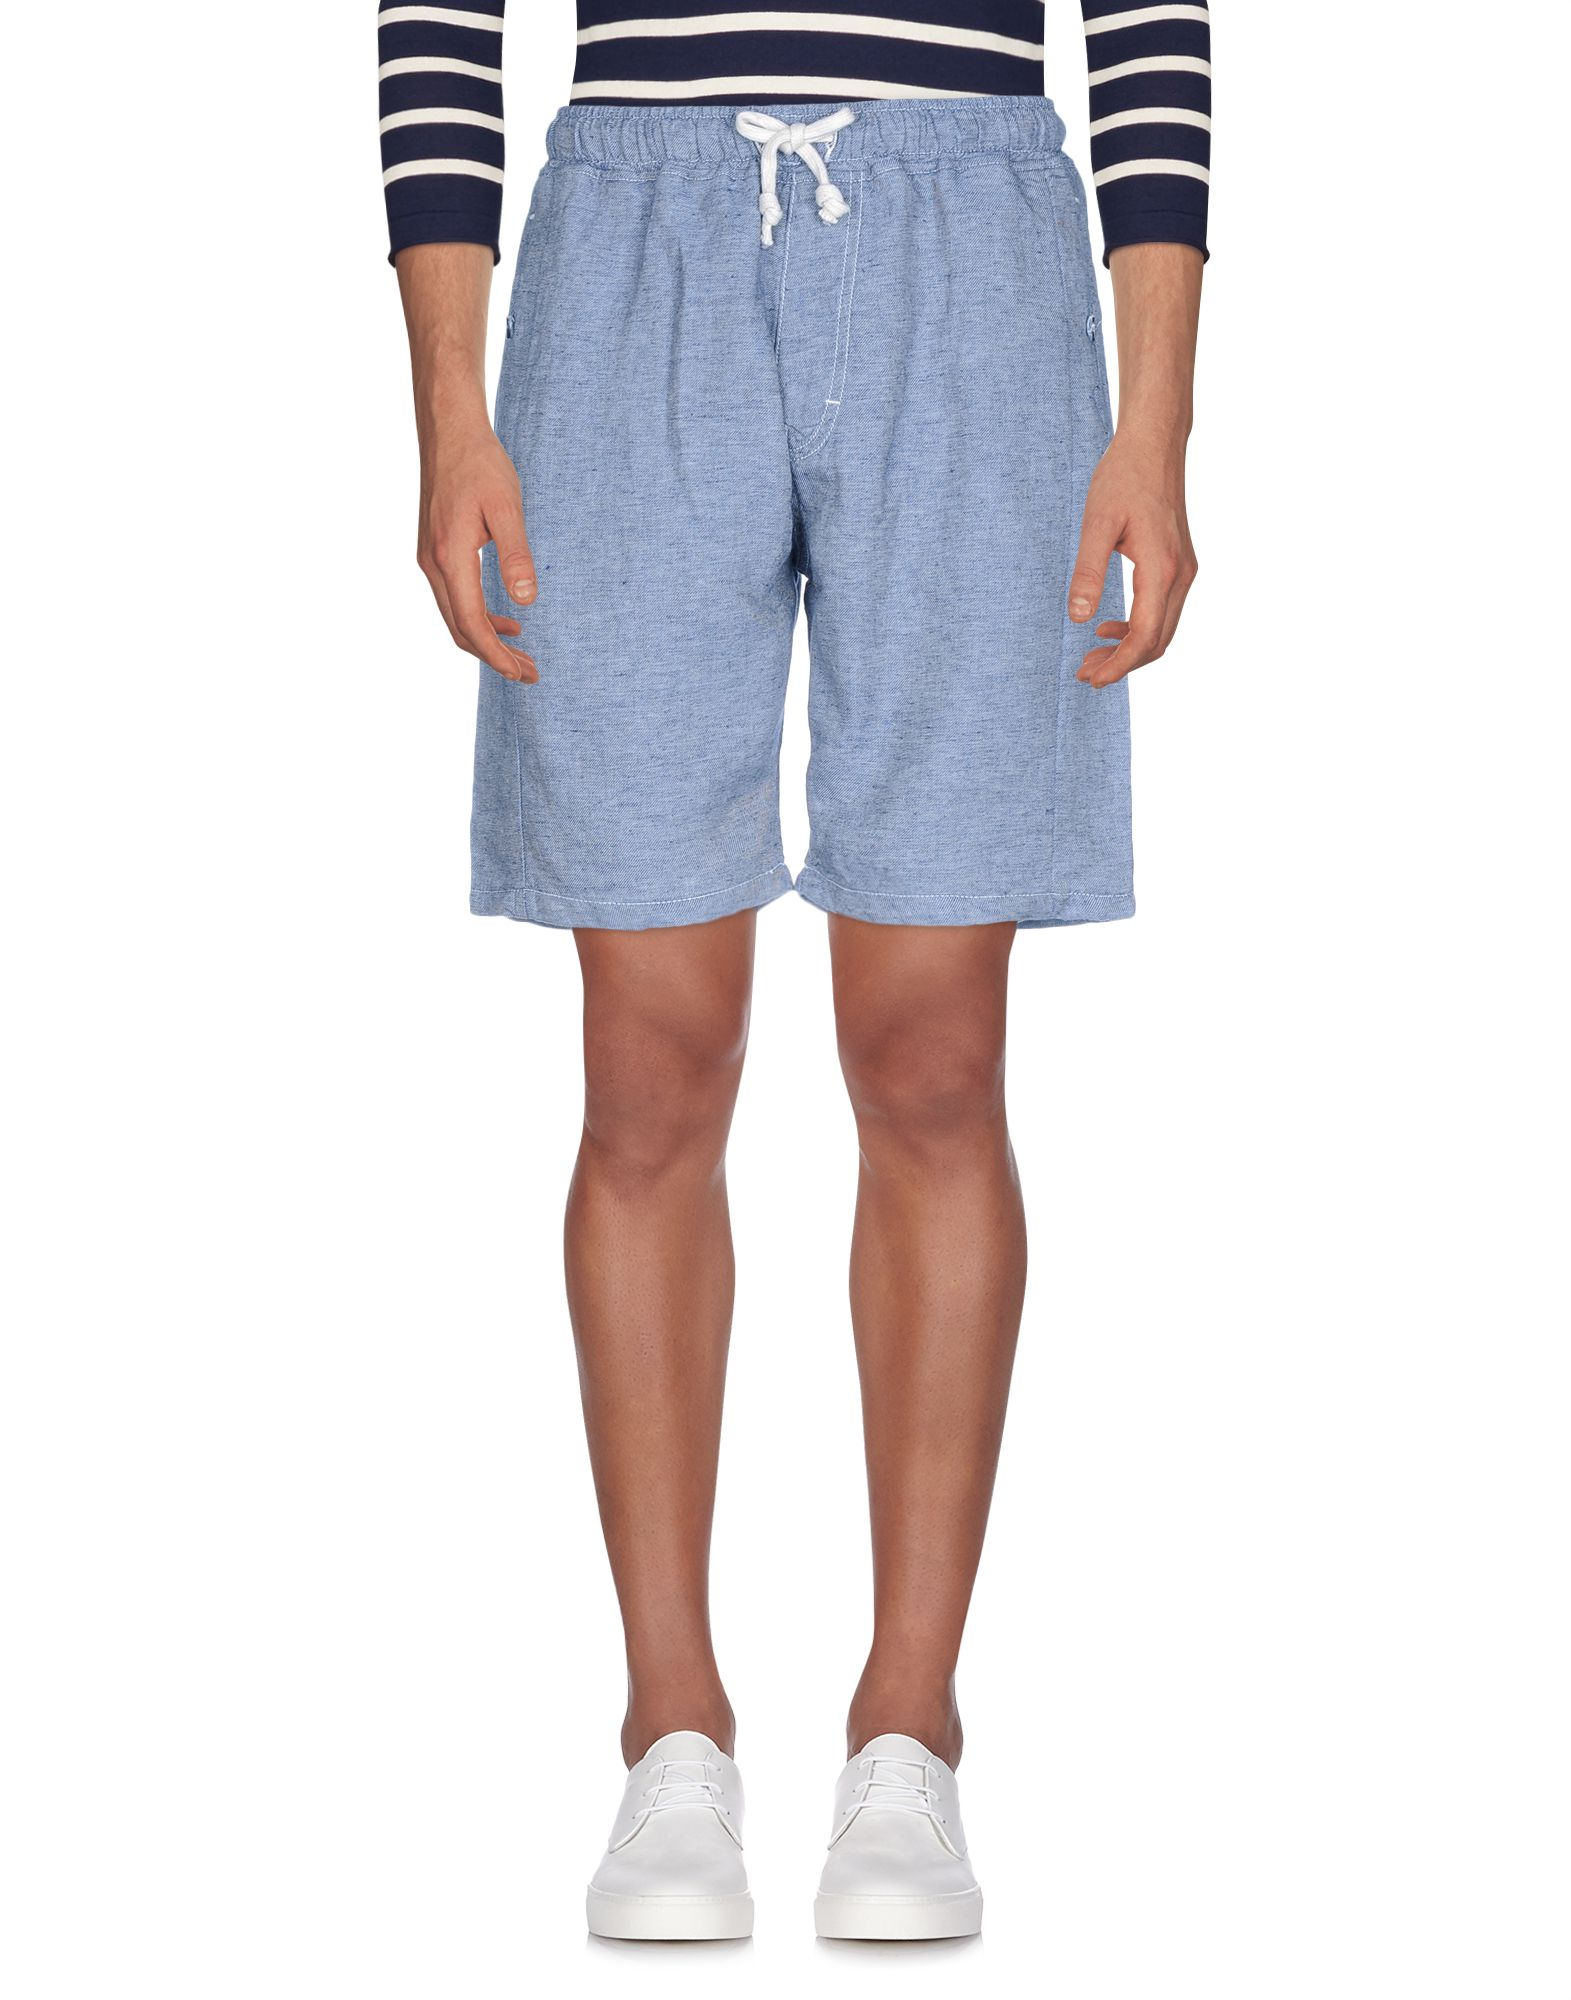 DENIM - Denim bermudas Takeshy Kurosawa